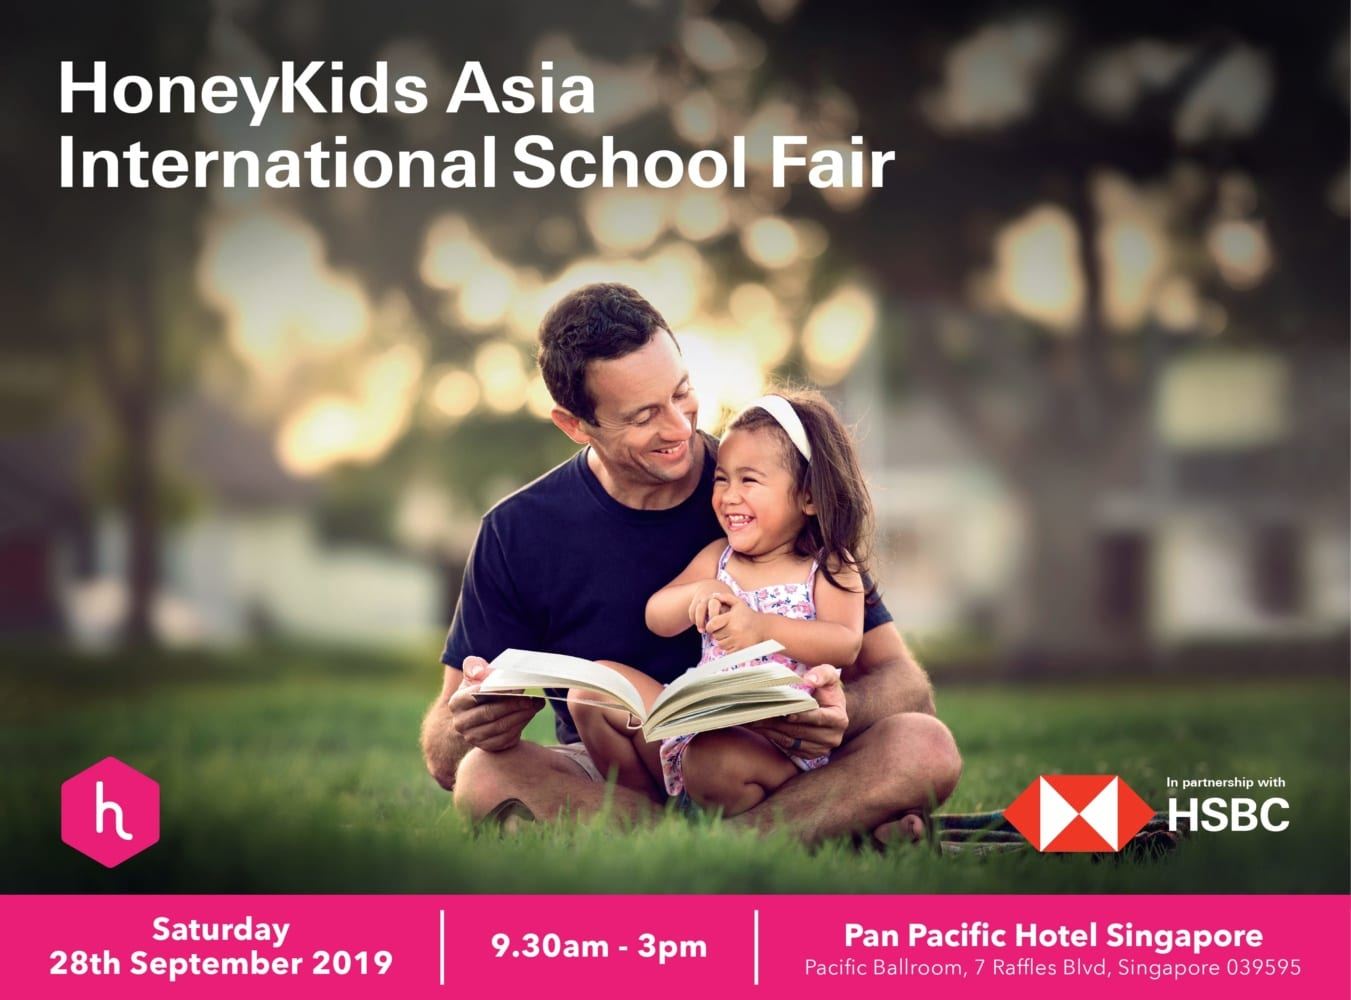 Event Day Registration: HoneyKids Asia International School Fair with HSBC